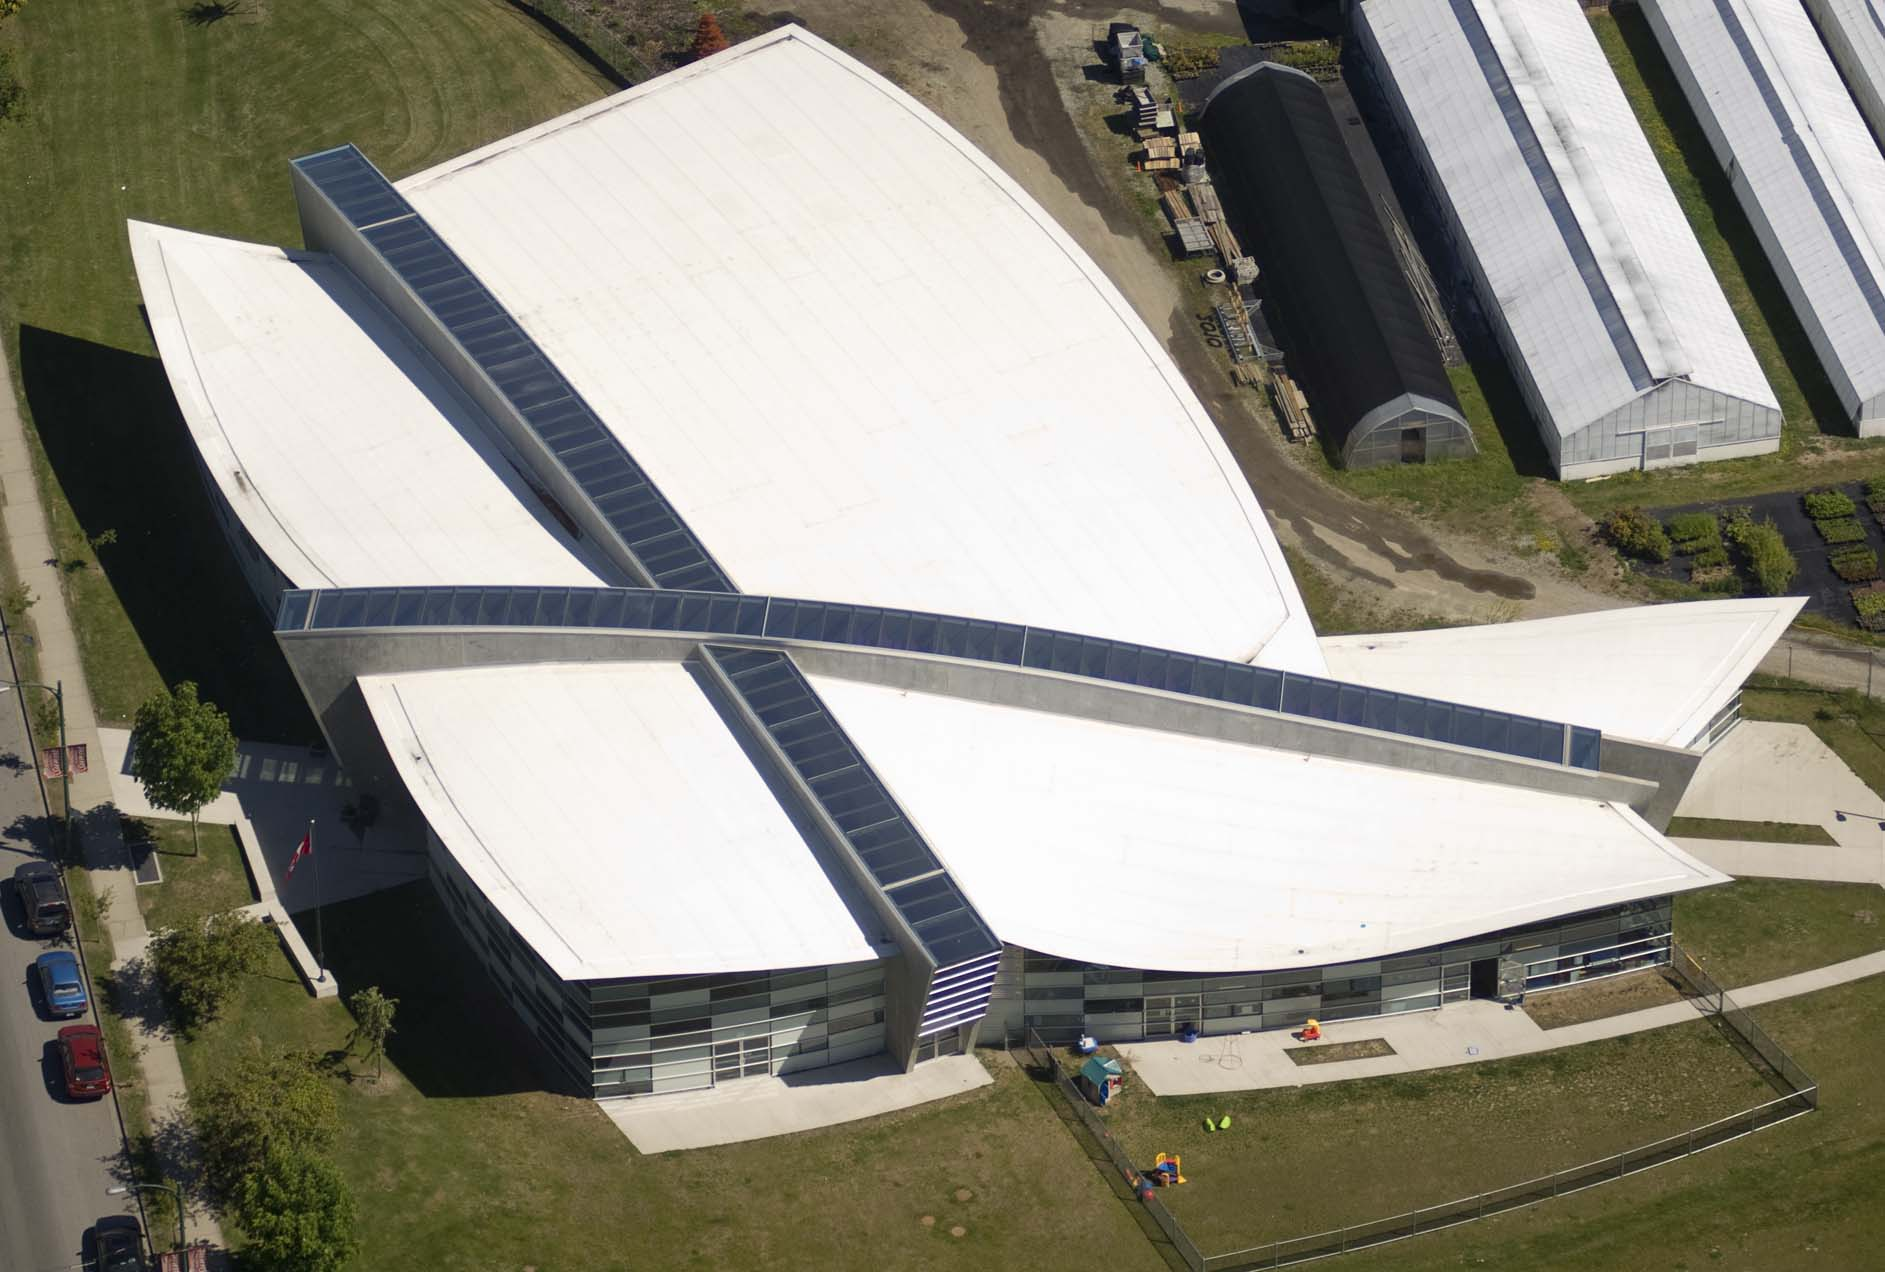 Most of the buildings used for housing, training, or events for the 2010 Winter Olympics in Vancouver were protected by singleply roofi ng—about 278,700 m2 (almost 3 million sf). Photo courtesy Carlisle SynTec